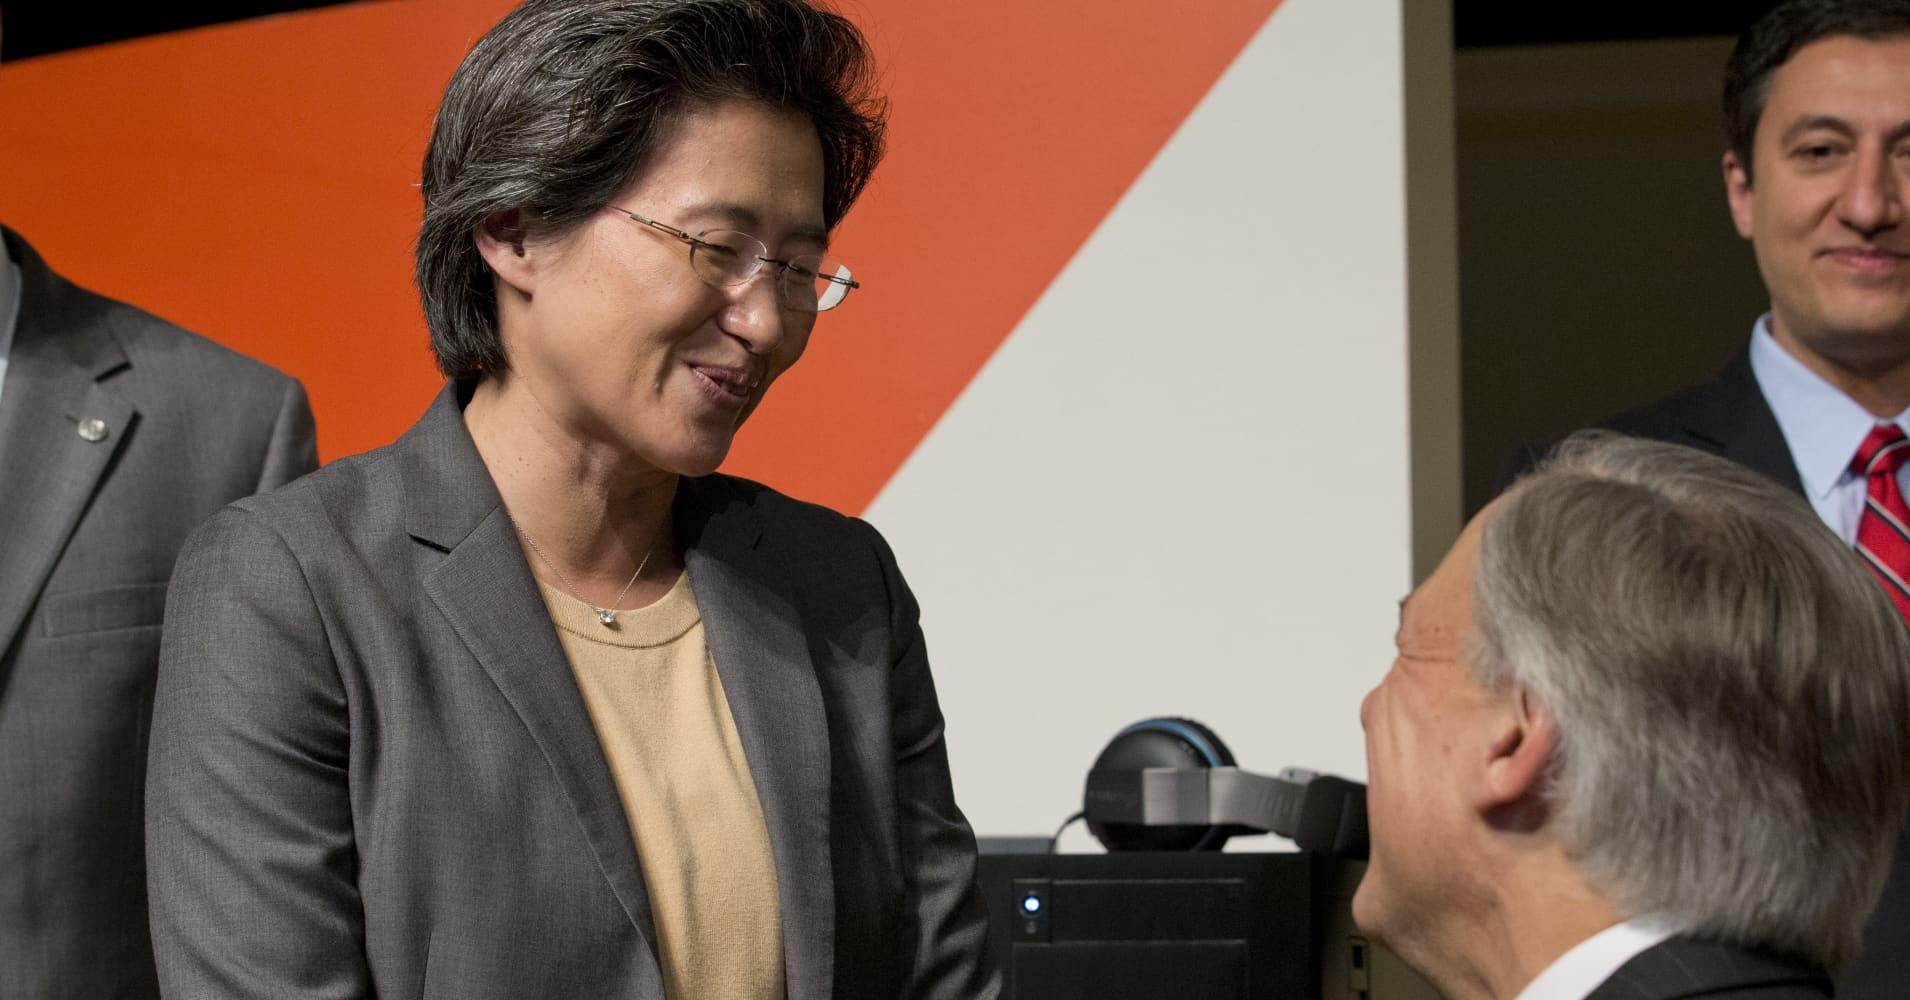 AMD CEO: Our chip in new MacBook Pro built for 'high performance' in razor-thin form factor